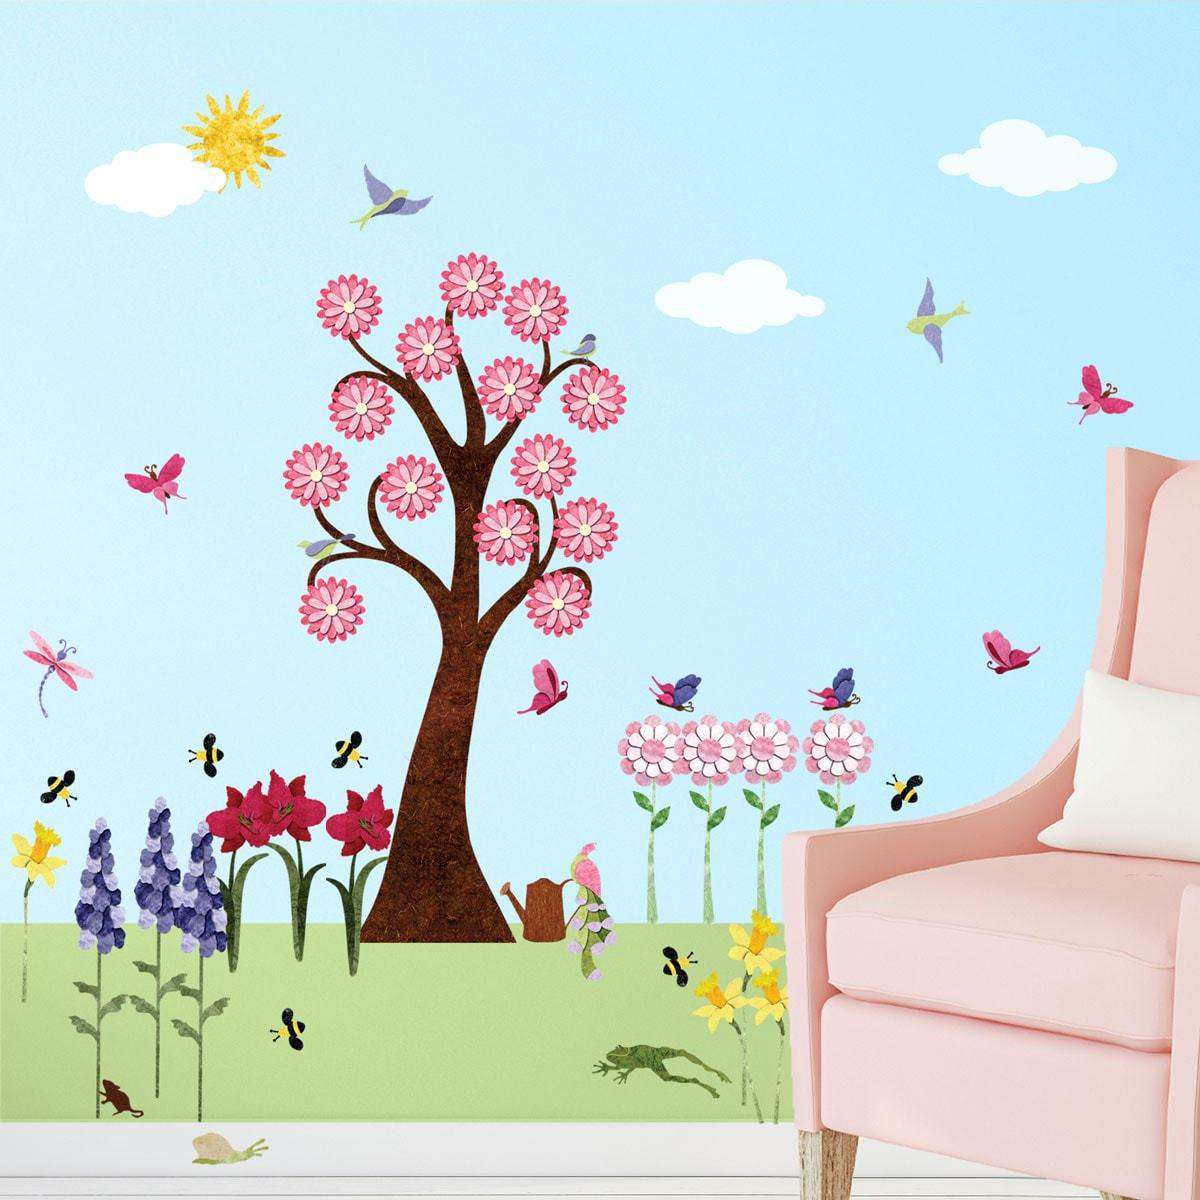 Flower Wall Decals For Girls Room U2013 Peel U0026 Stick Flower Stickers U0026 Large  Tree Decal ... Part 38